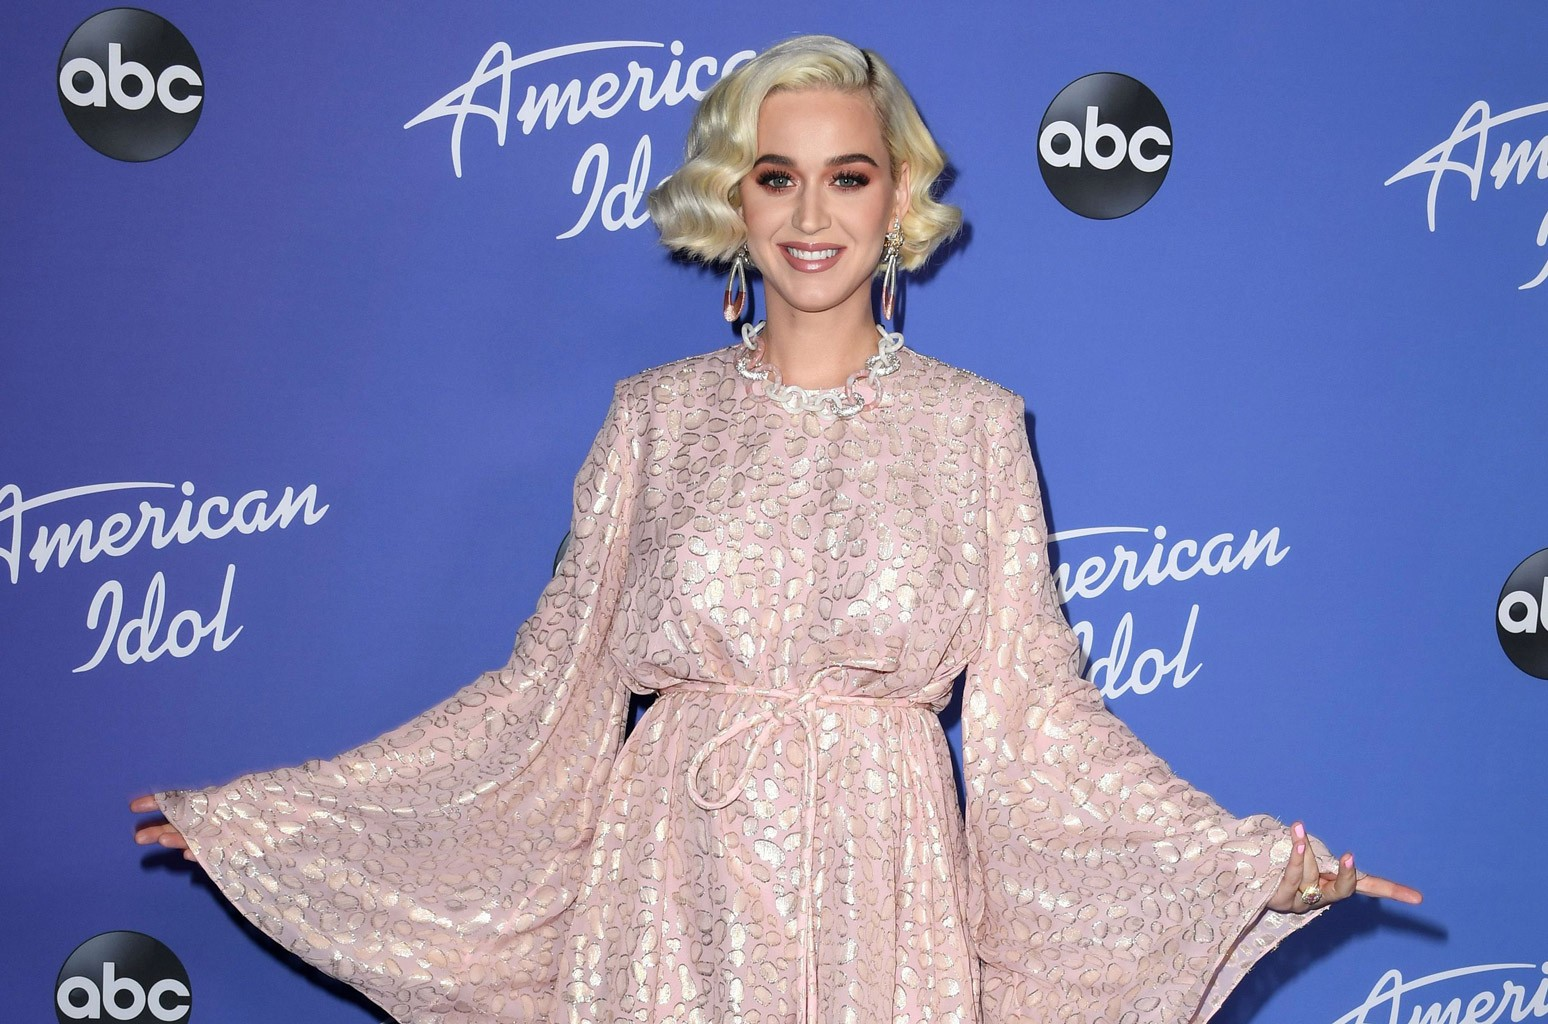 Raven-Haired Katy Perry Talks Motherhood During COVID, Super Bowl, Taylor Swift Baby Gift on 'Kimmel'